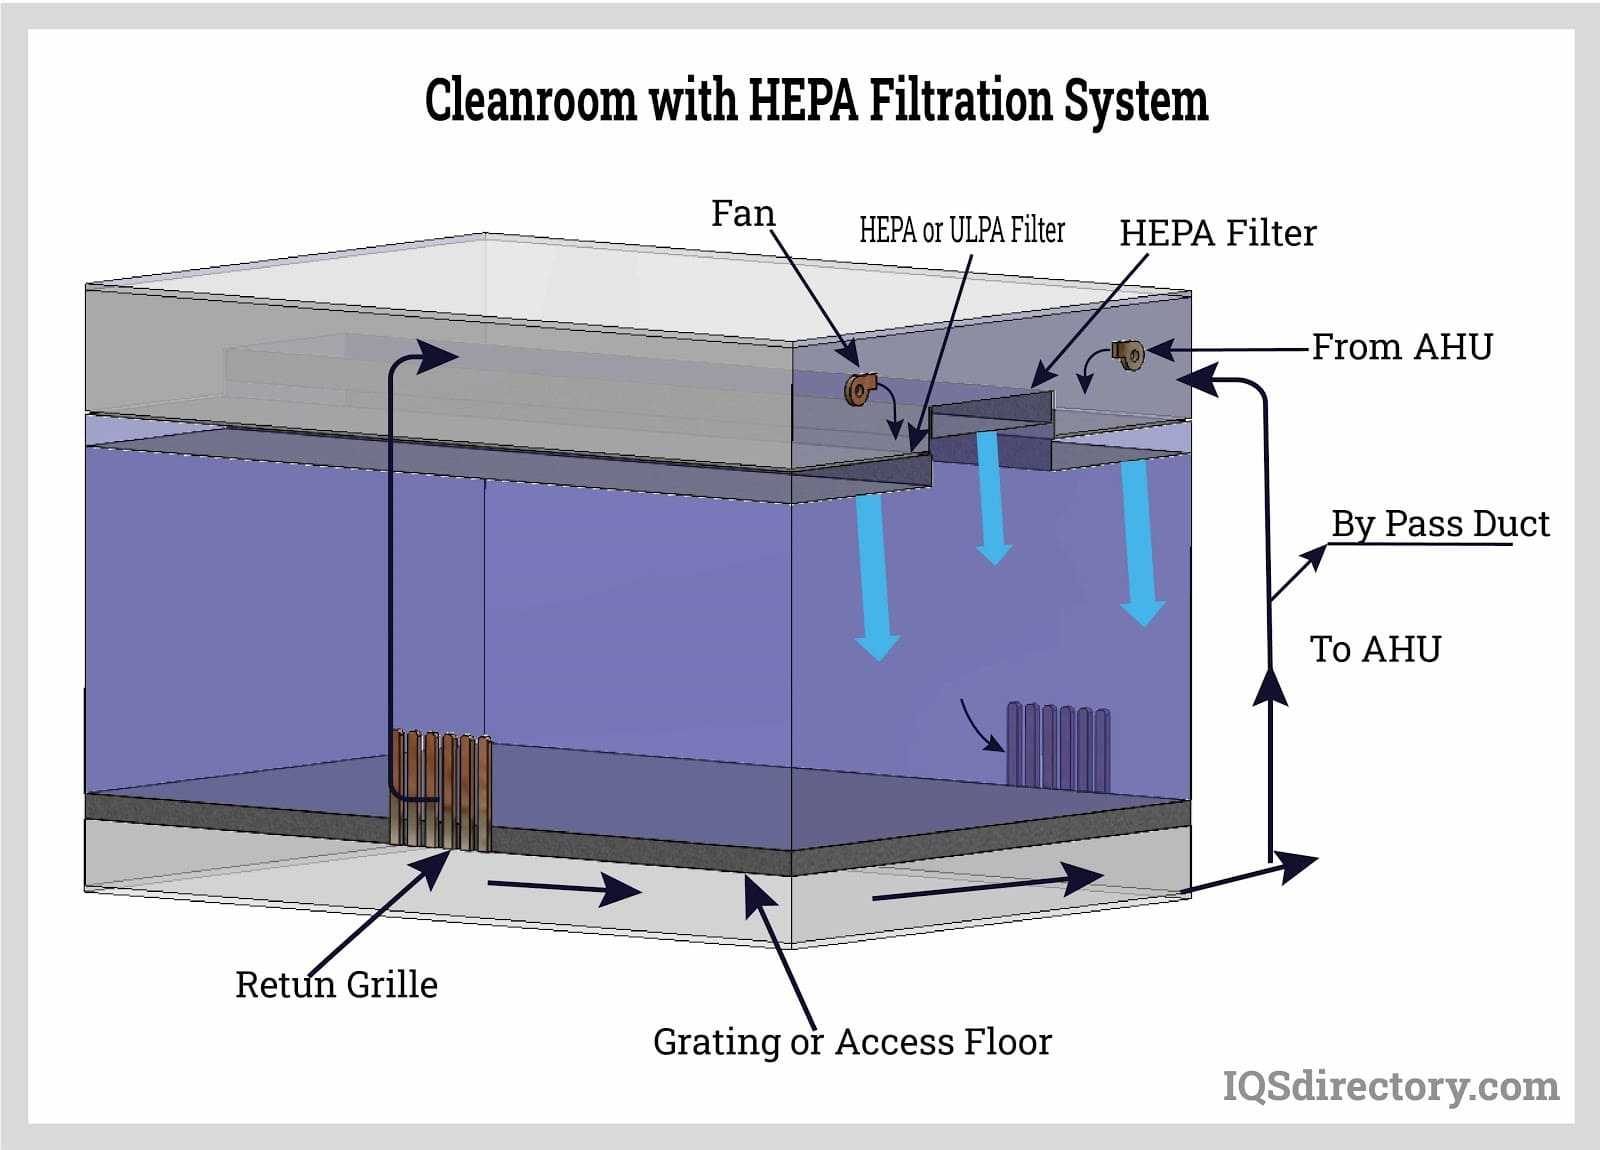 Cleanroom with HEPA Filtration System